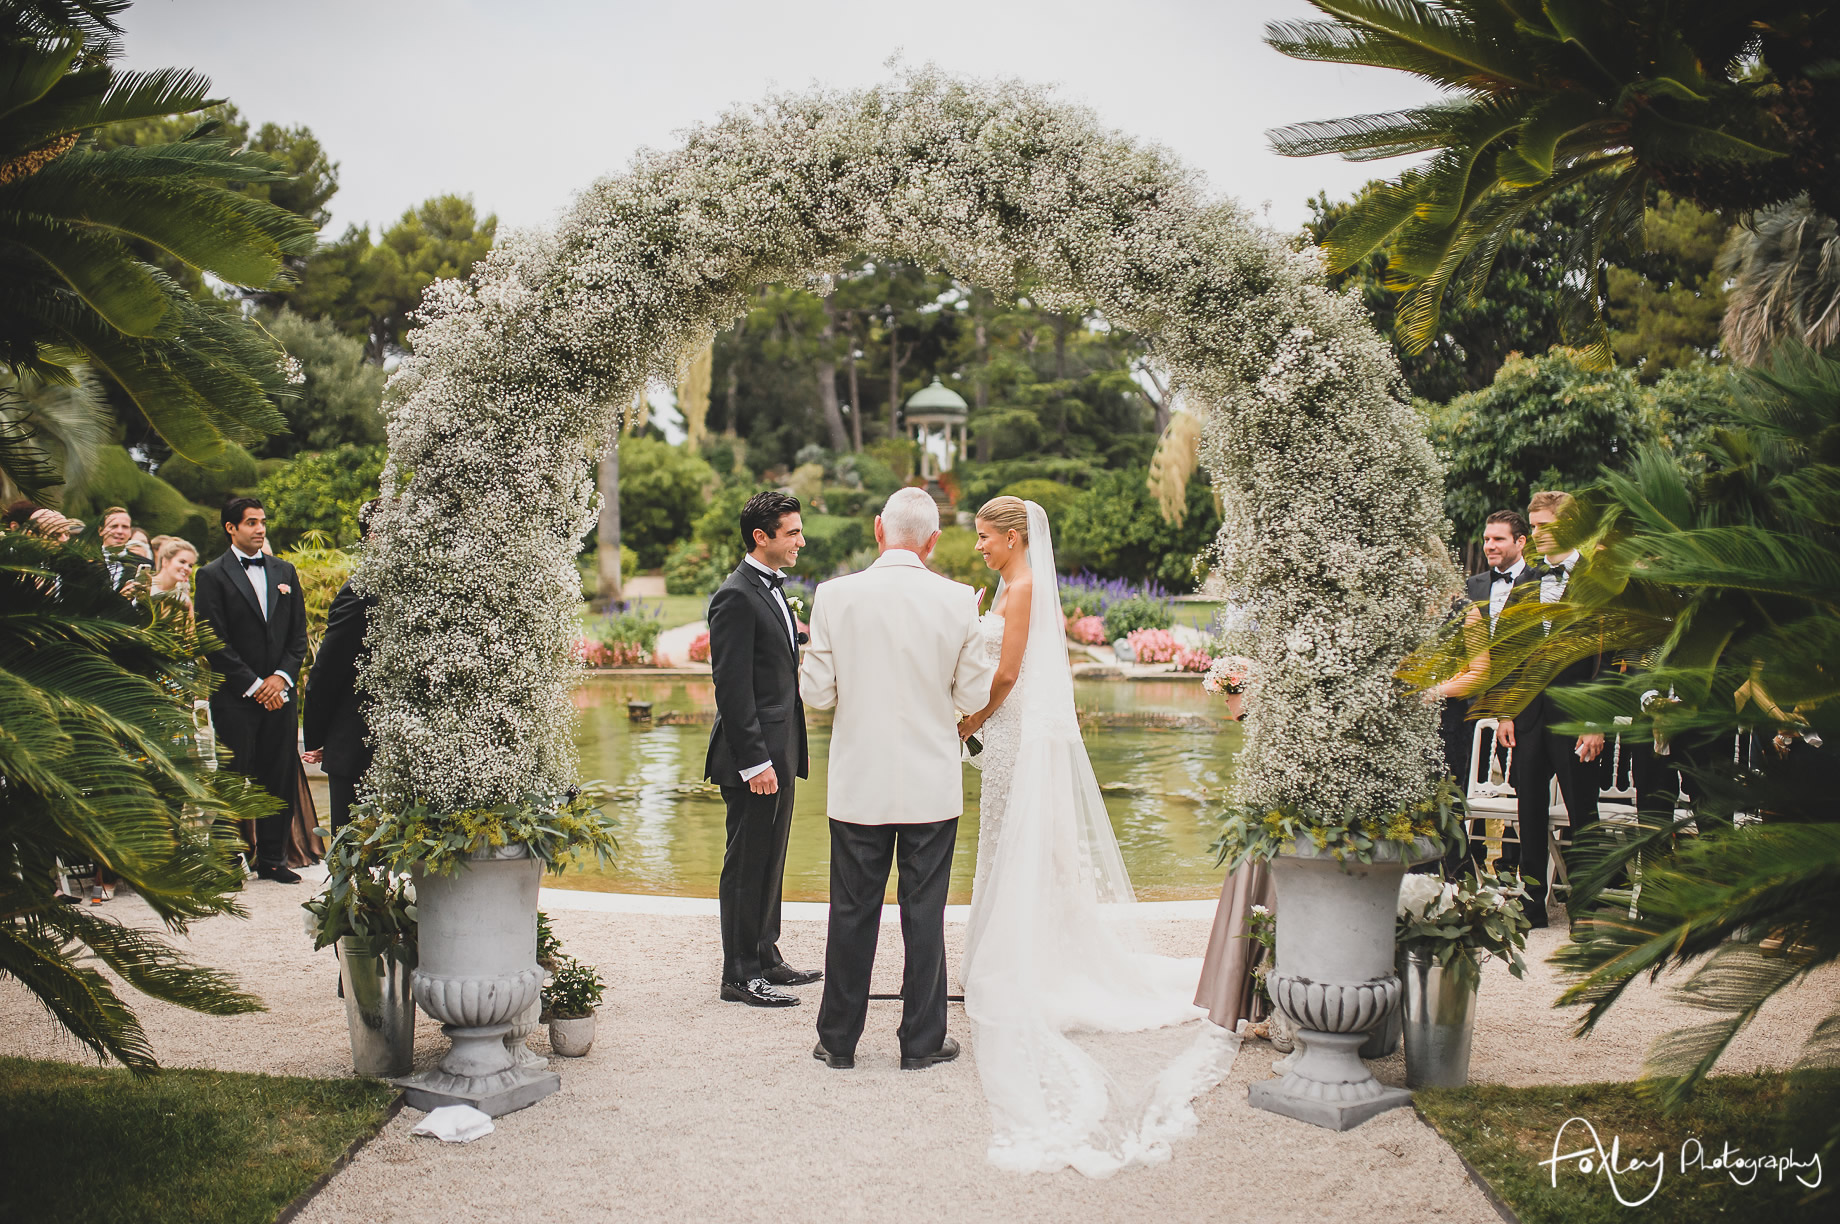 Jil will s wedding at villa ephrussi de rothschild - Villa et jardins ephrussi de rothschild ...